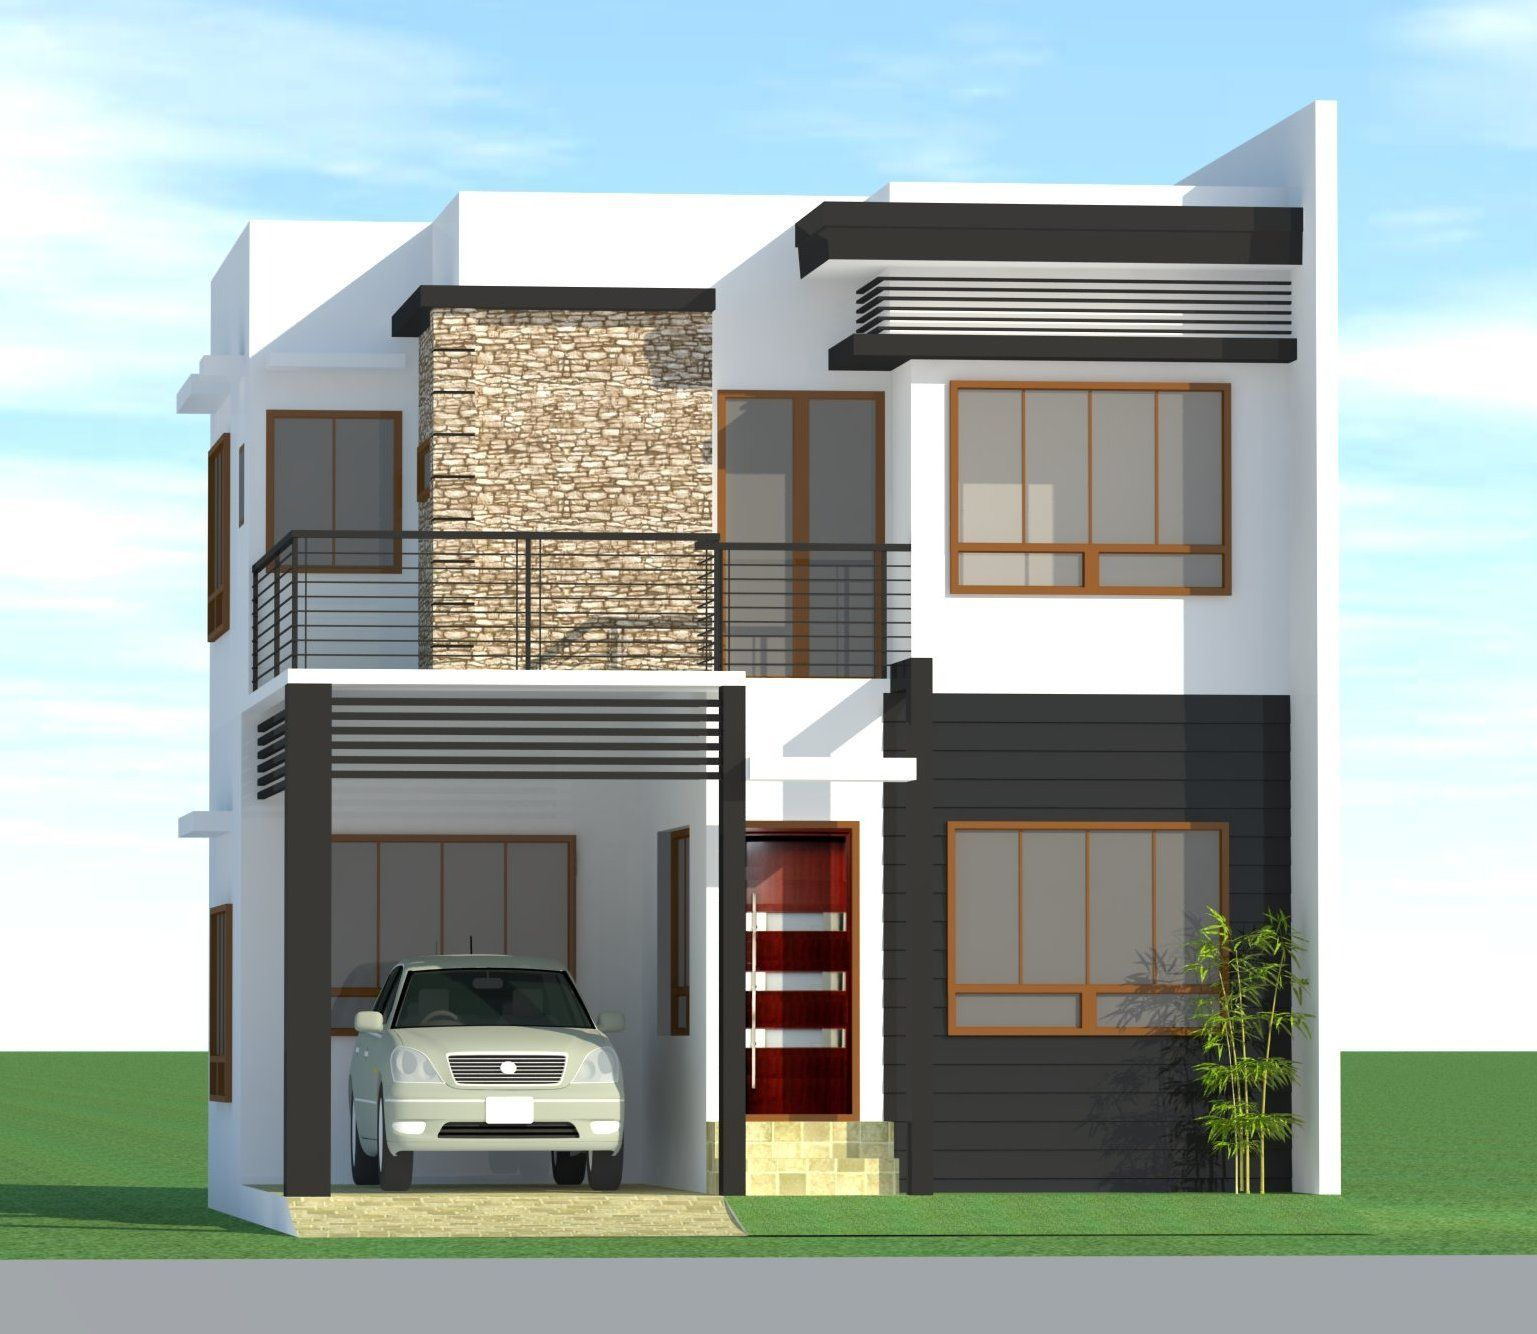 Marvellous Design Modern Architectural House Philippines 11 Small In The Philippines House Design Duplex House Design Small House Exteriors